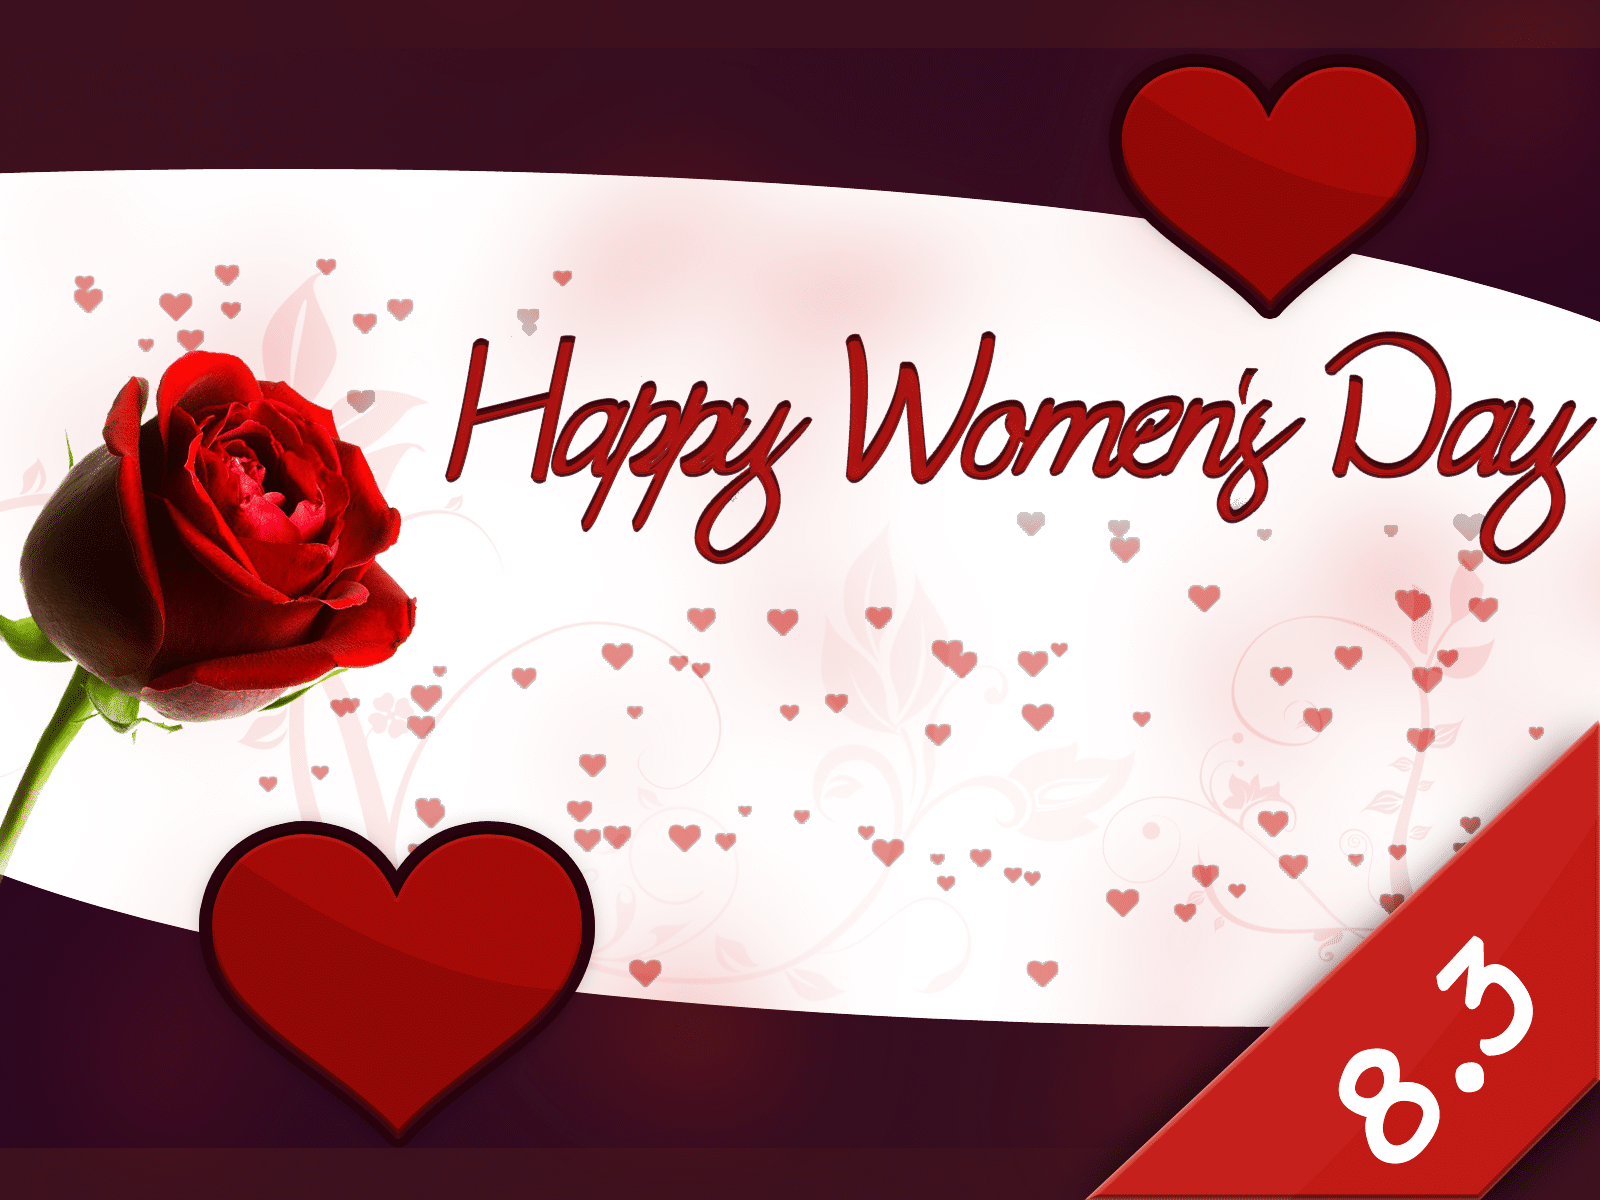 Womes's Day Wallpapers for mobile and desktop